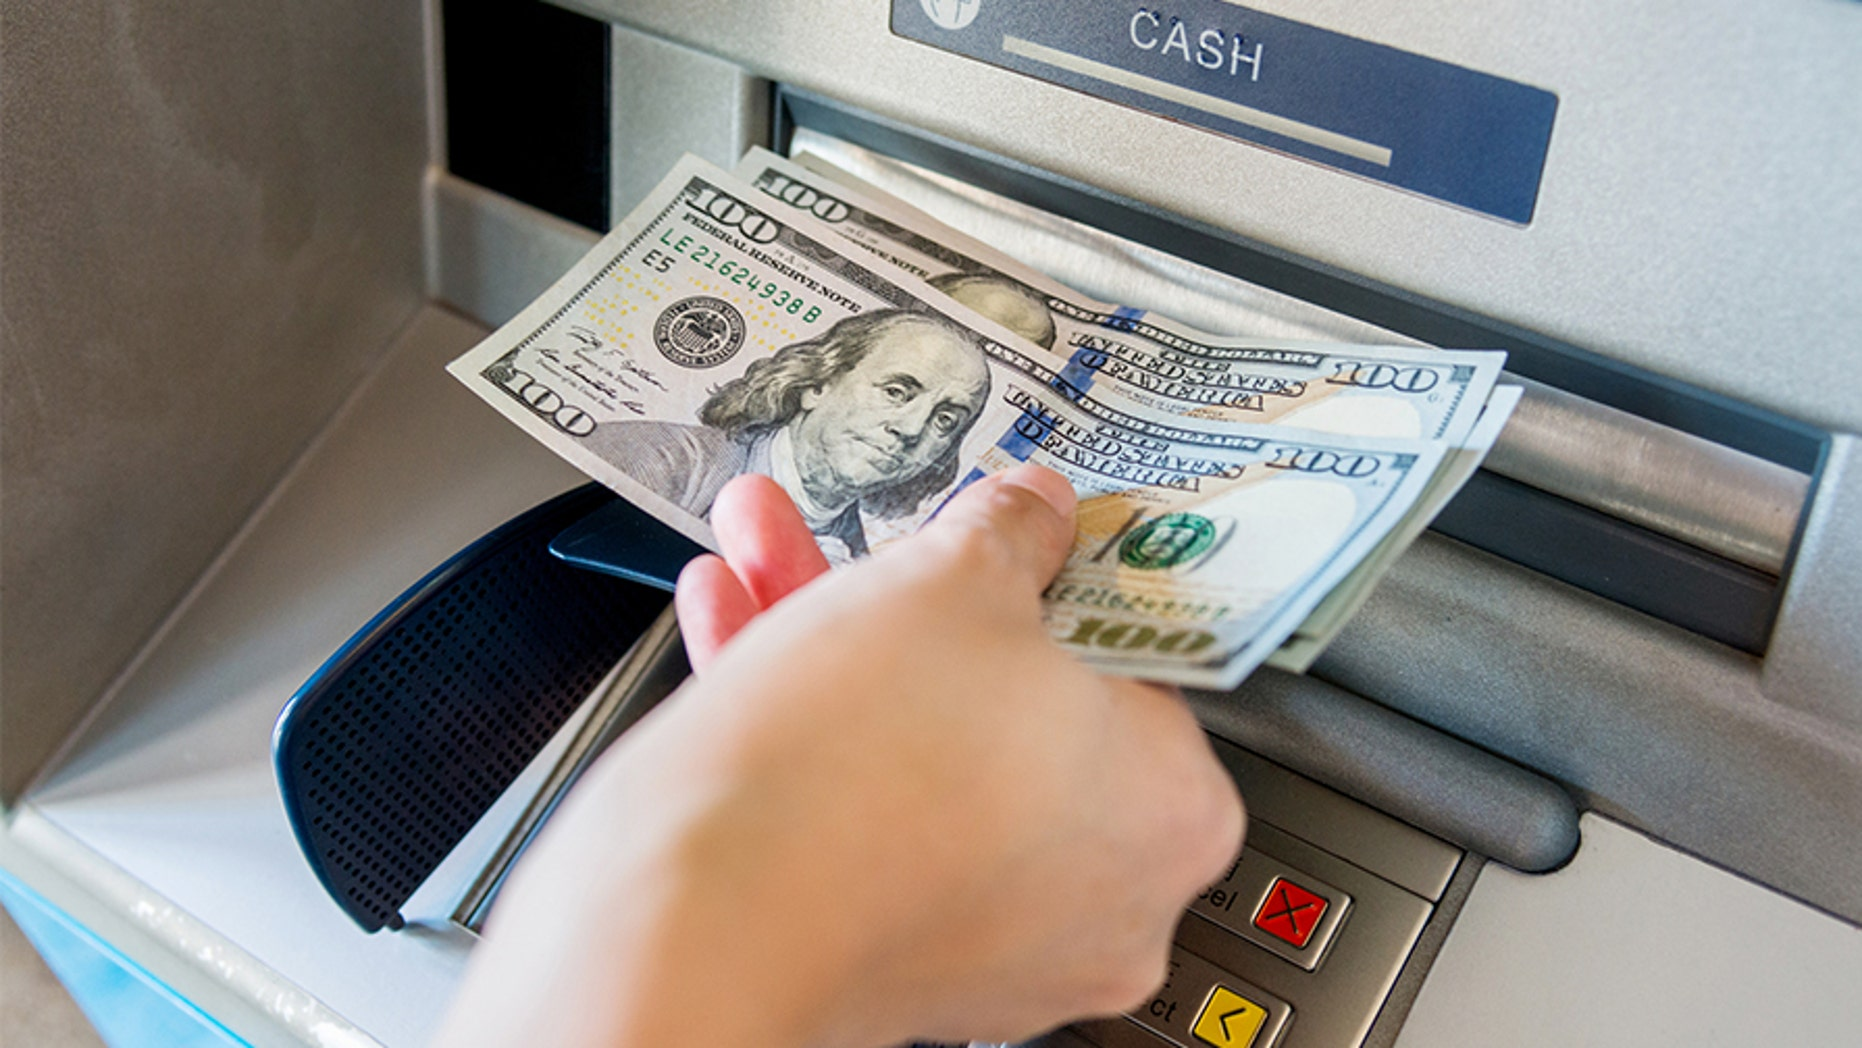 A Kansas woman (not pictured) is accused of taking advantage of a faulty ATM that was dispensing $100 bills instead of $5 bills.